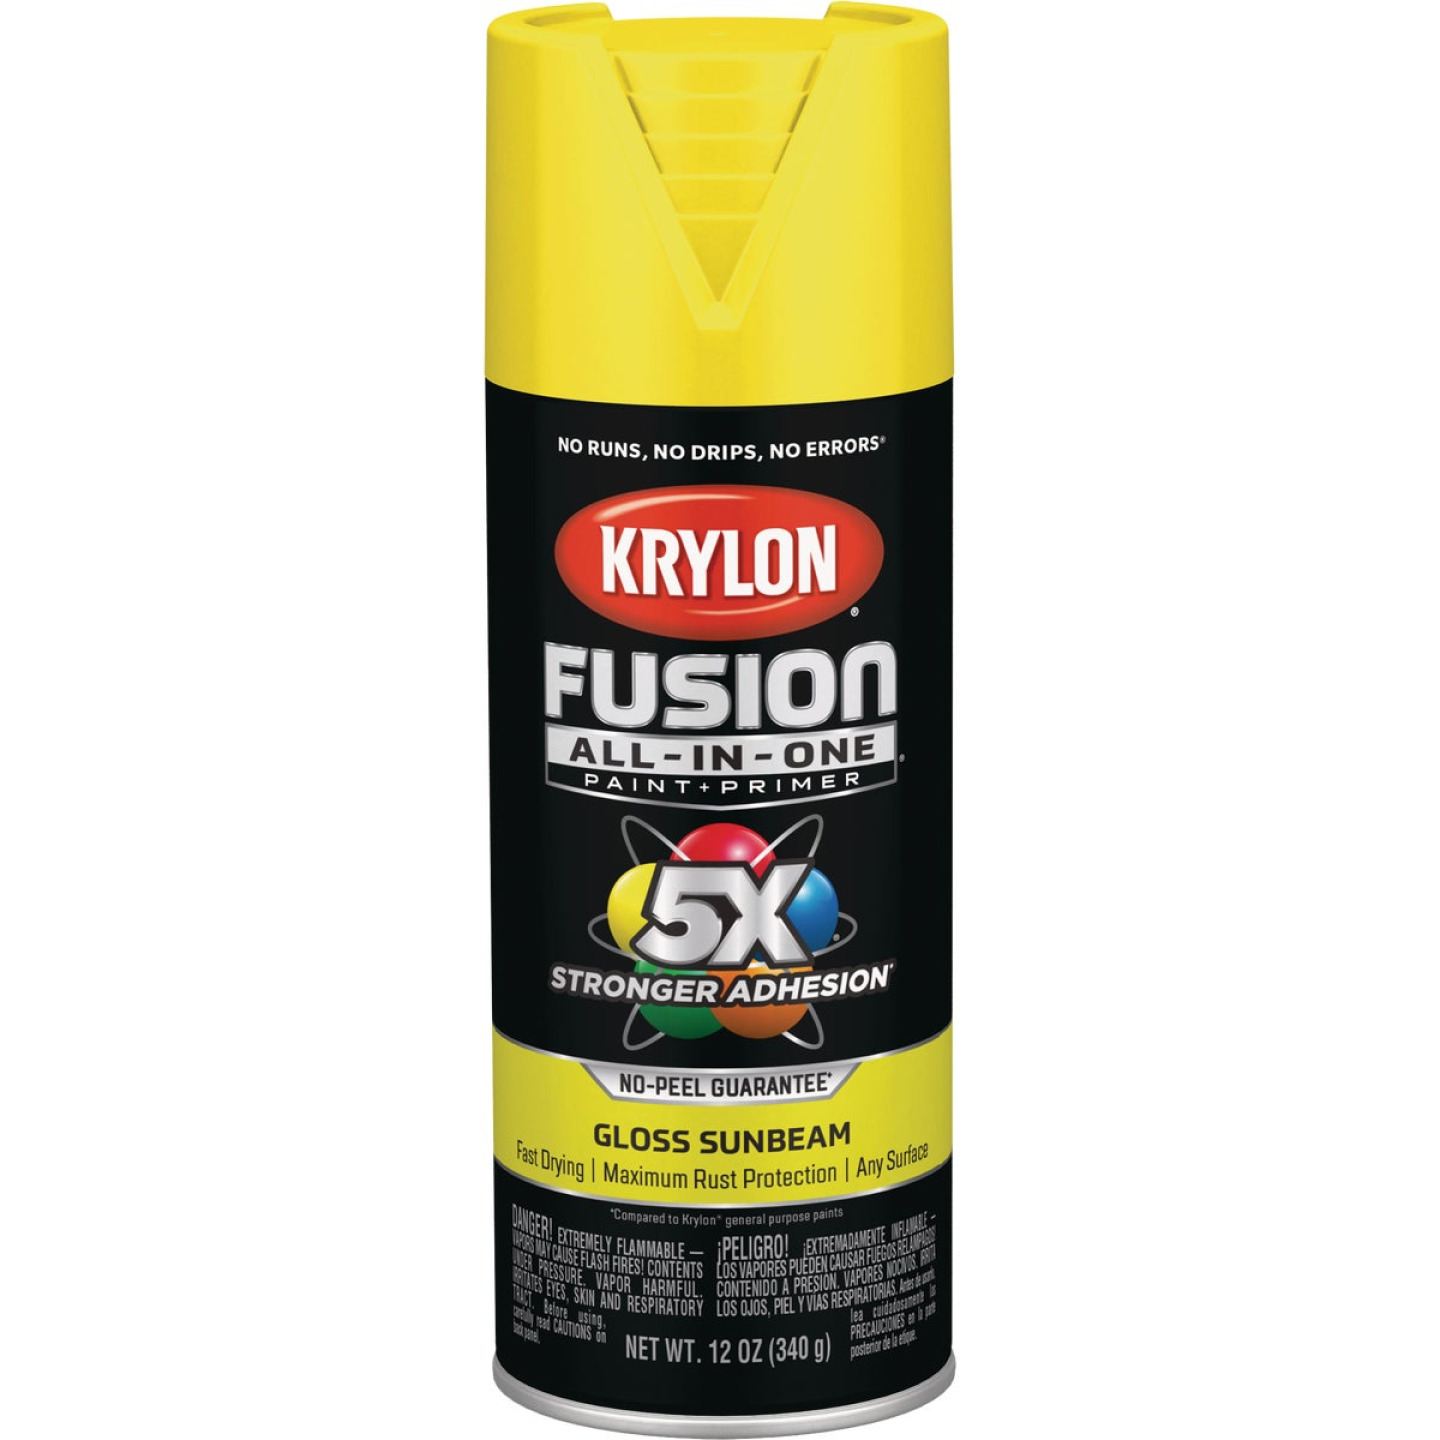 Krylon Fusion All-In-One Gloss Spray Paint & Primer, Sunbeam Image 1